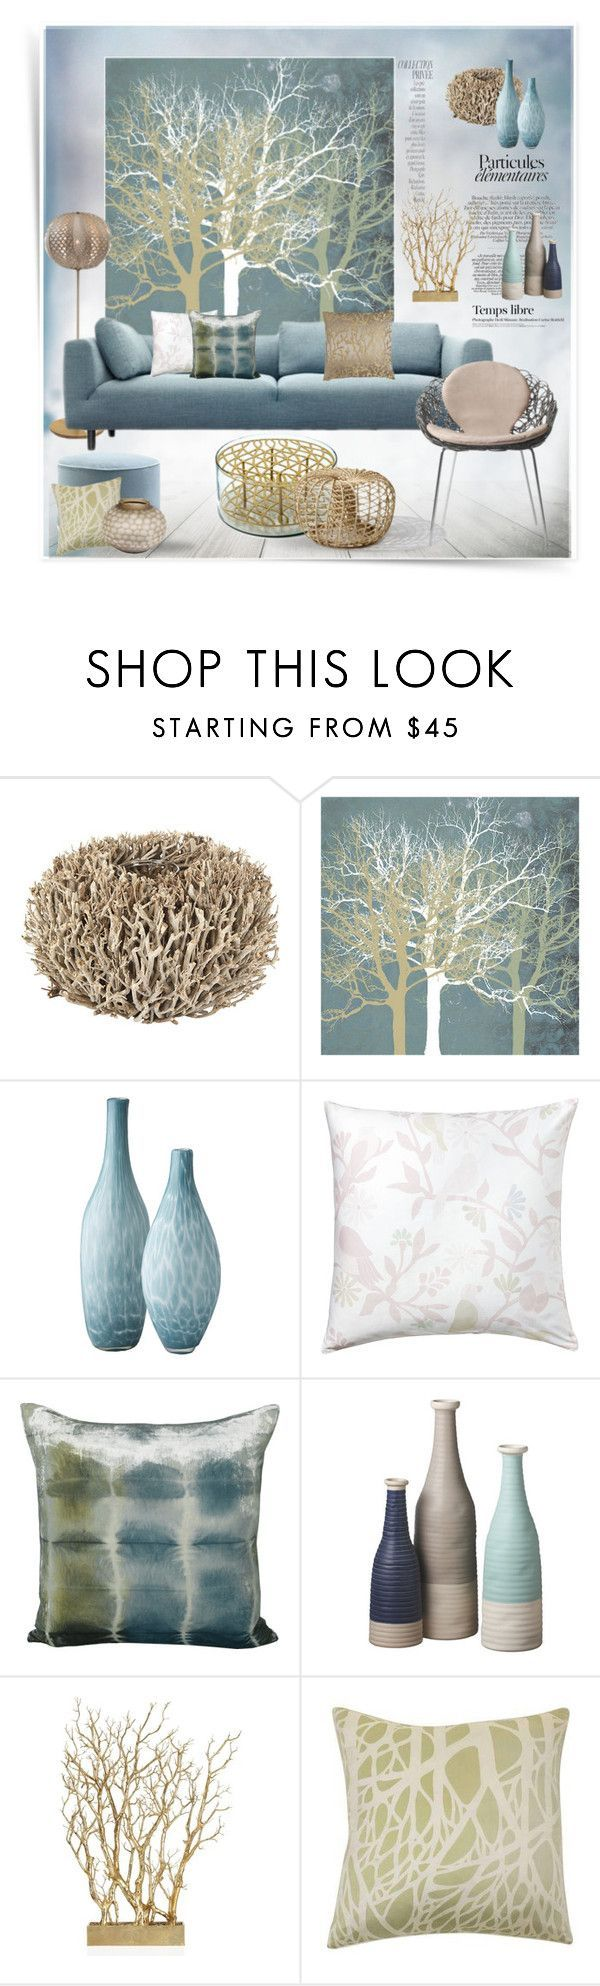 """""""Tranquill Trees"""" by snowbell ❤ liked on Polyvore featuring interior, interiors, interior design, thuis, home decor, interior decorating, See by Chloé, D&M, Klong en Lazy Susan"""